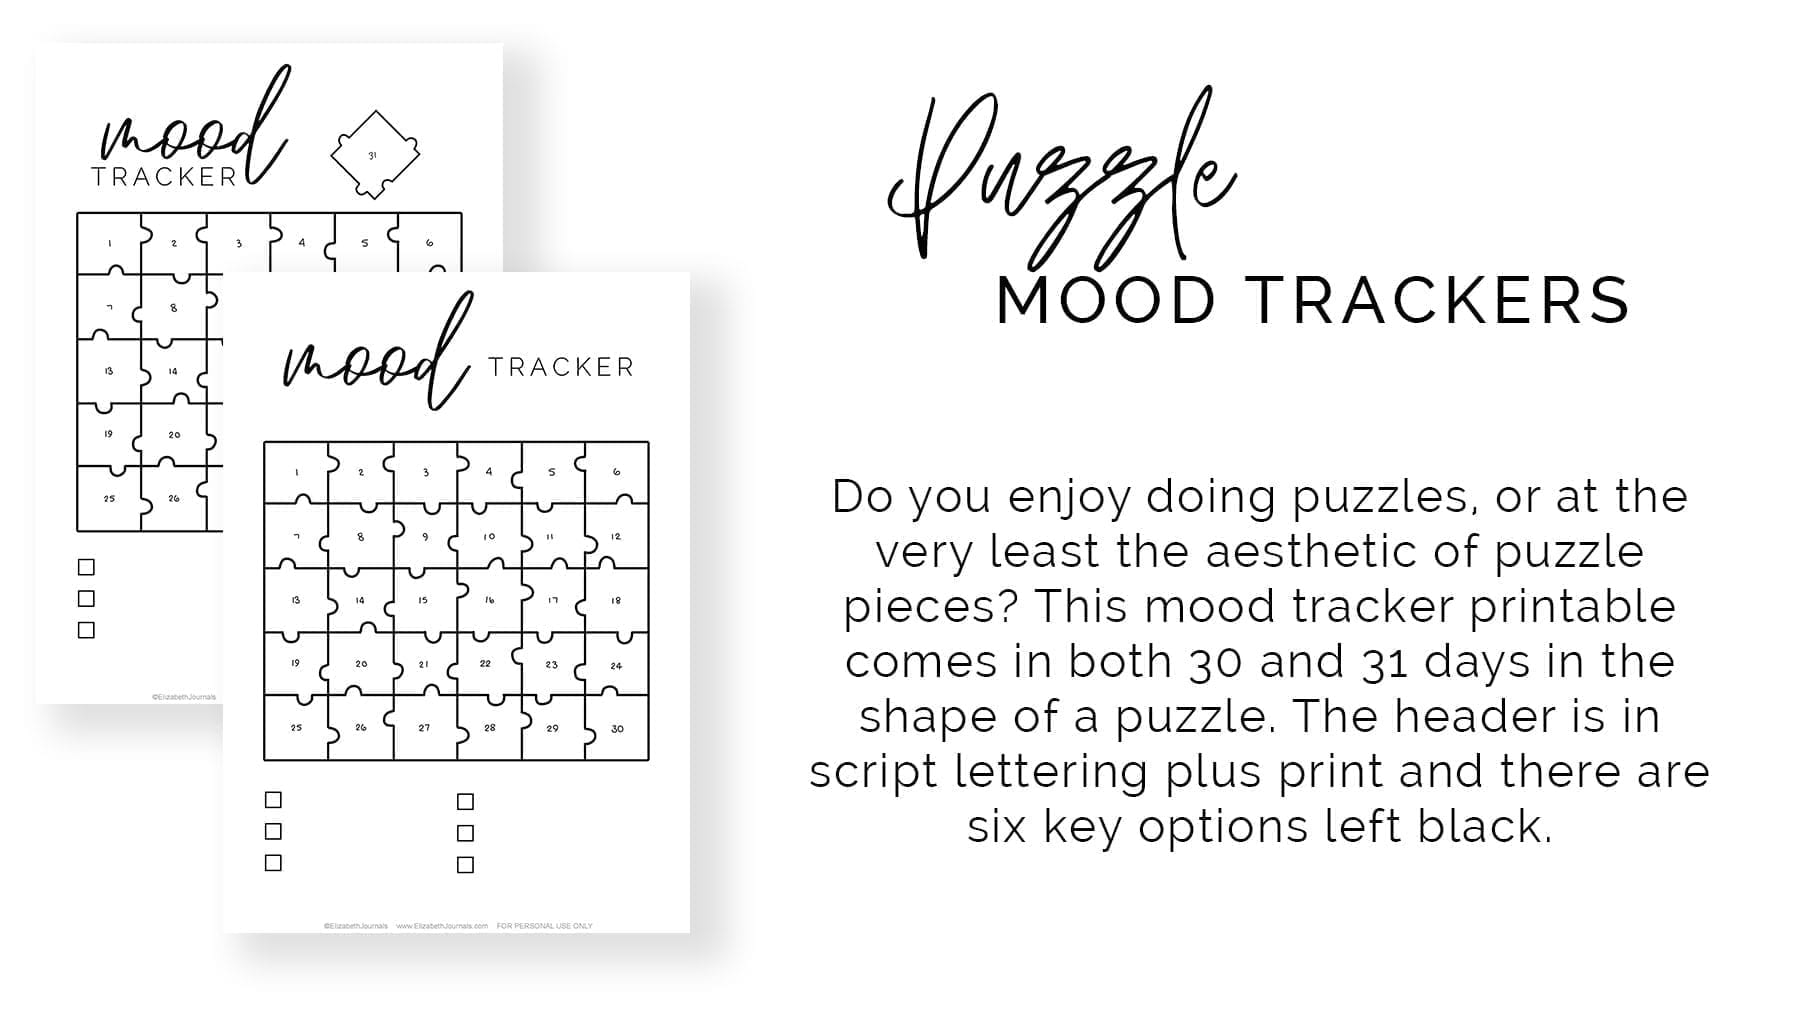 banner 1-preview of product-puzzle mood trackers-product description